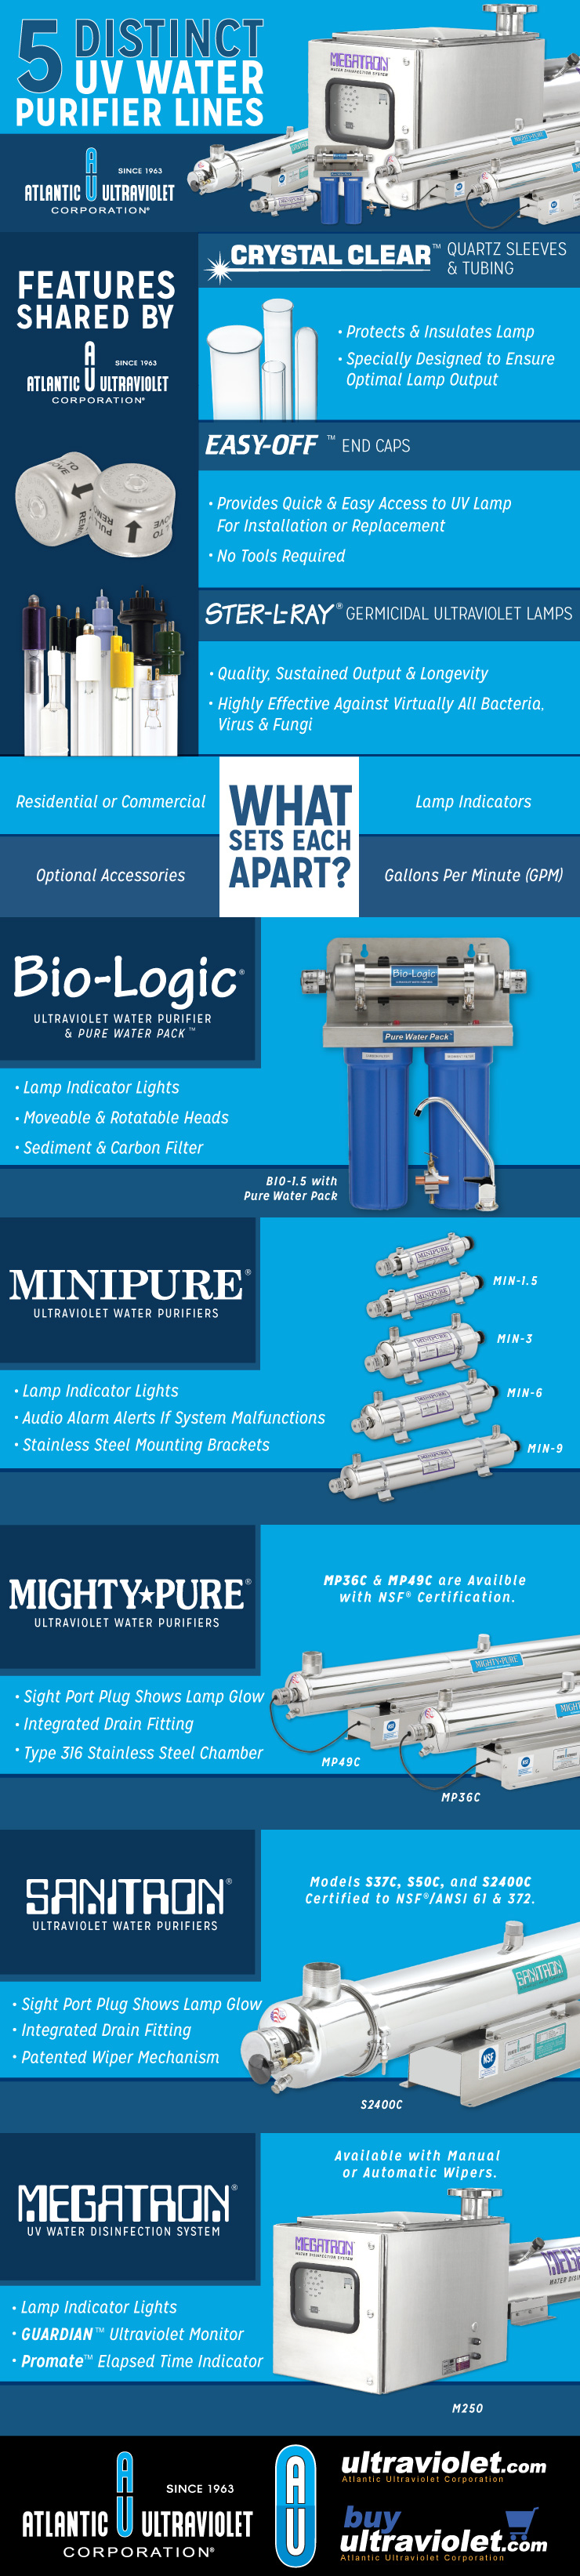 5 Distinct UV Water Purifier Lines Infographic